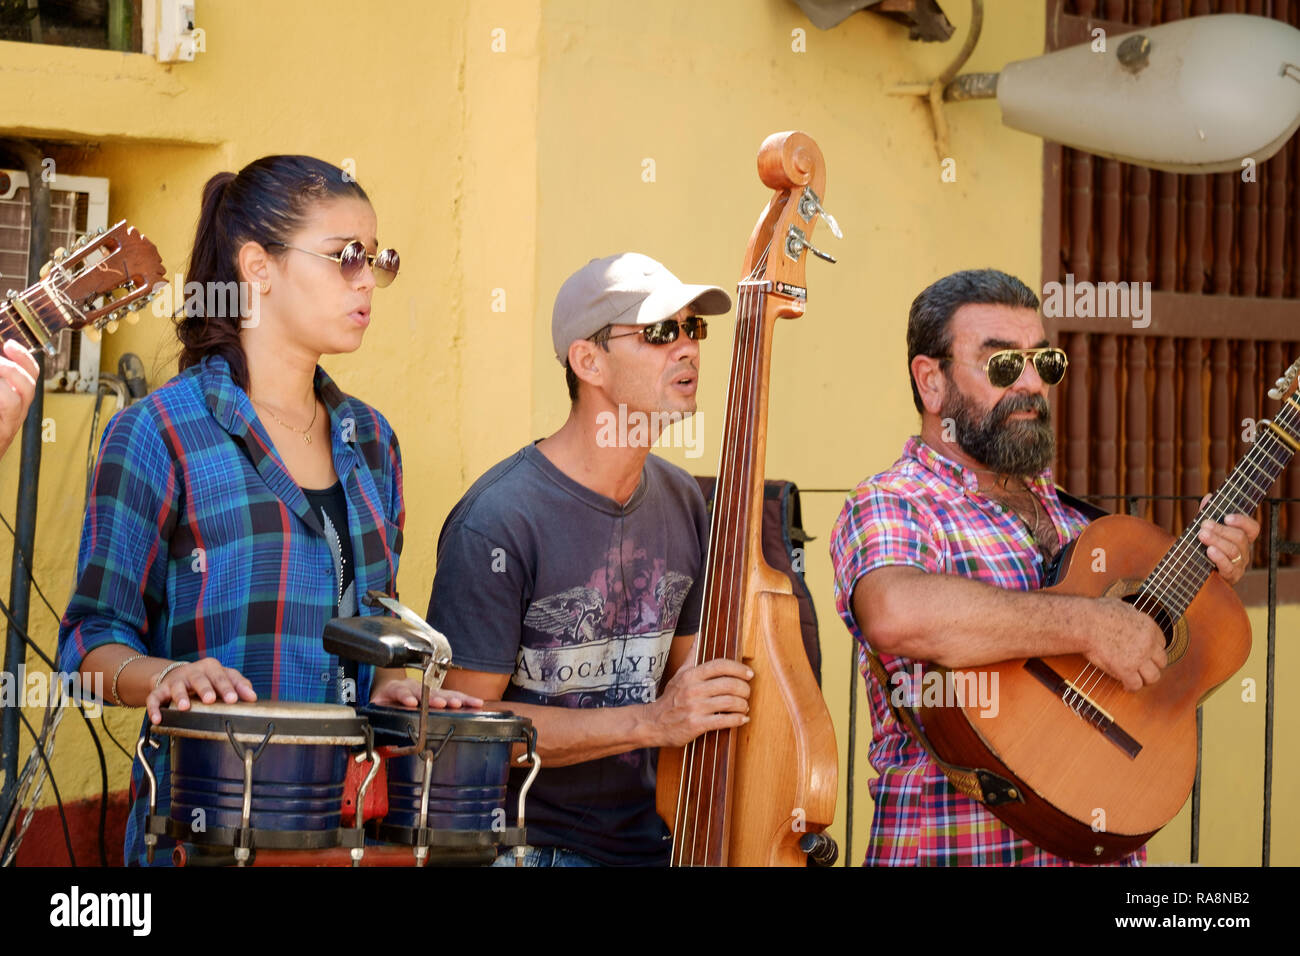 Restaurant Band in Trinidad, Cuba - Stock Image